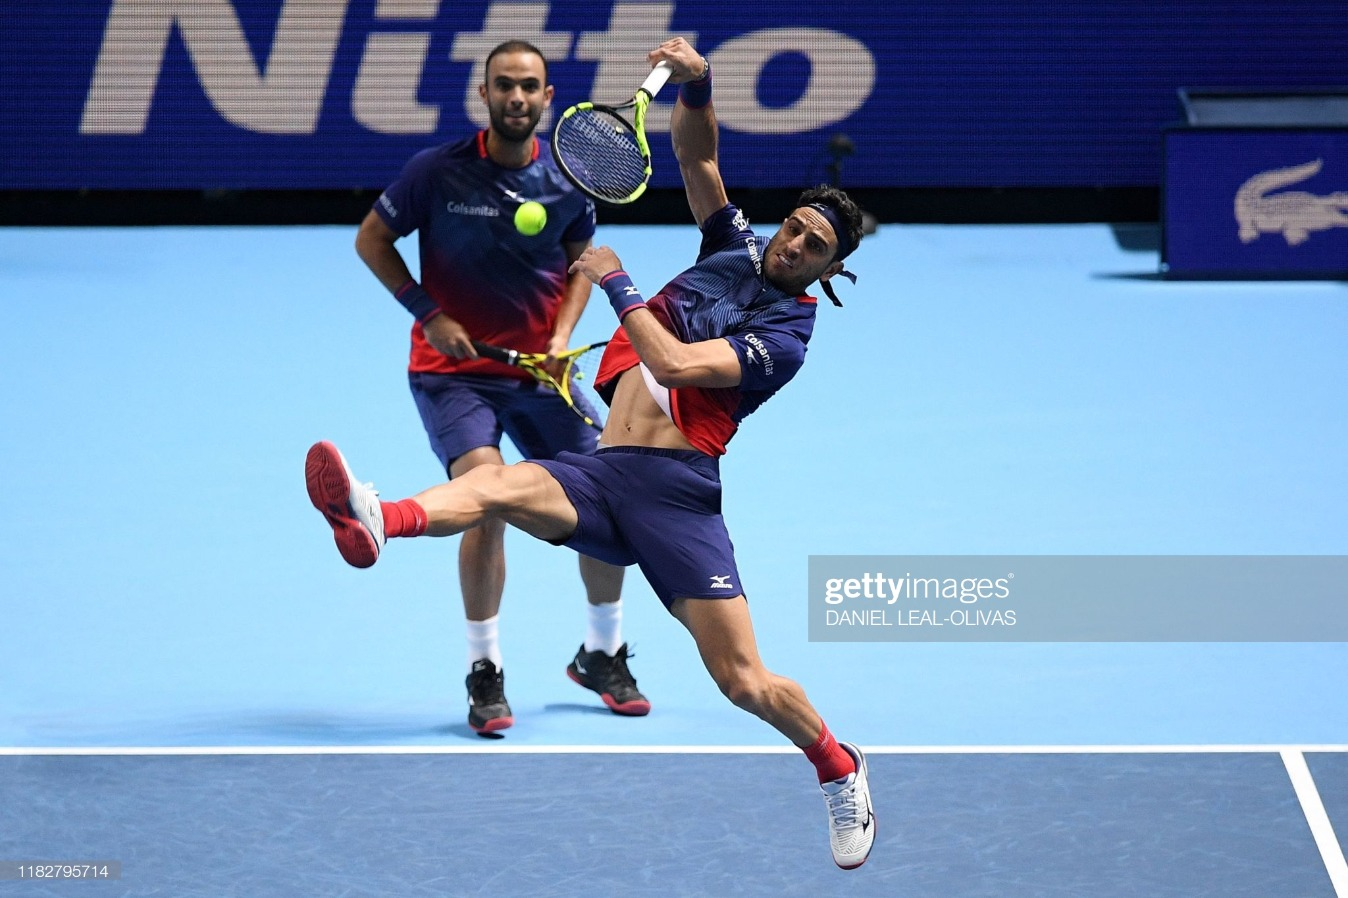 TENNIS-GBR-ATP-FINALS : News Photo